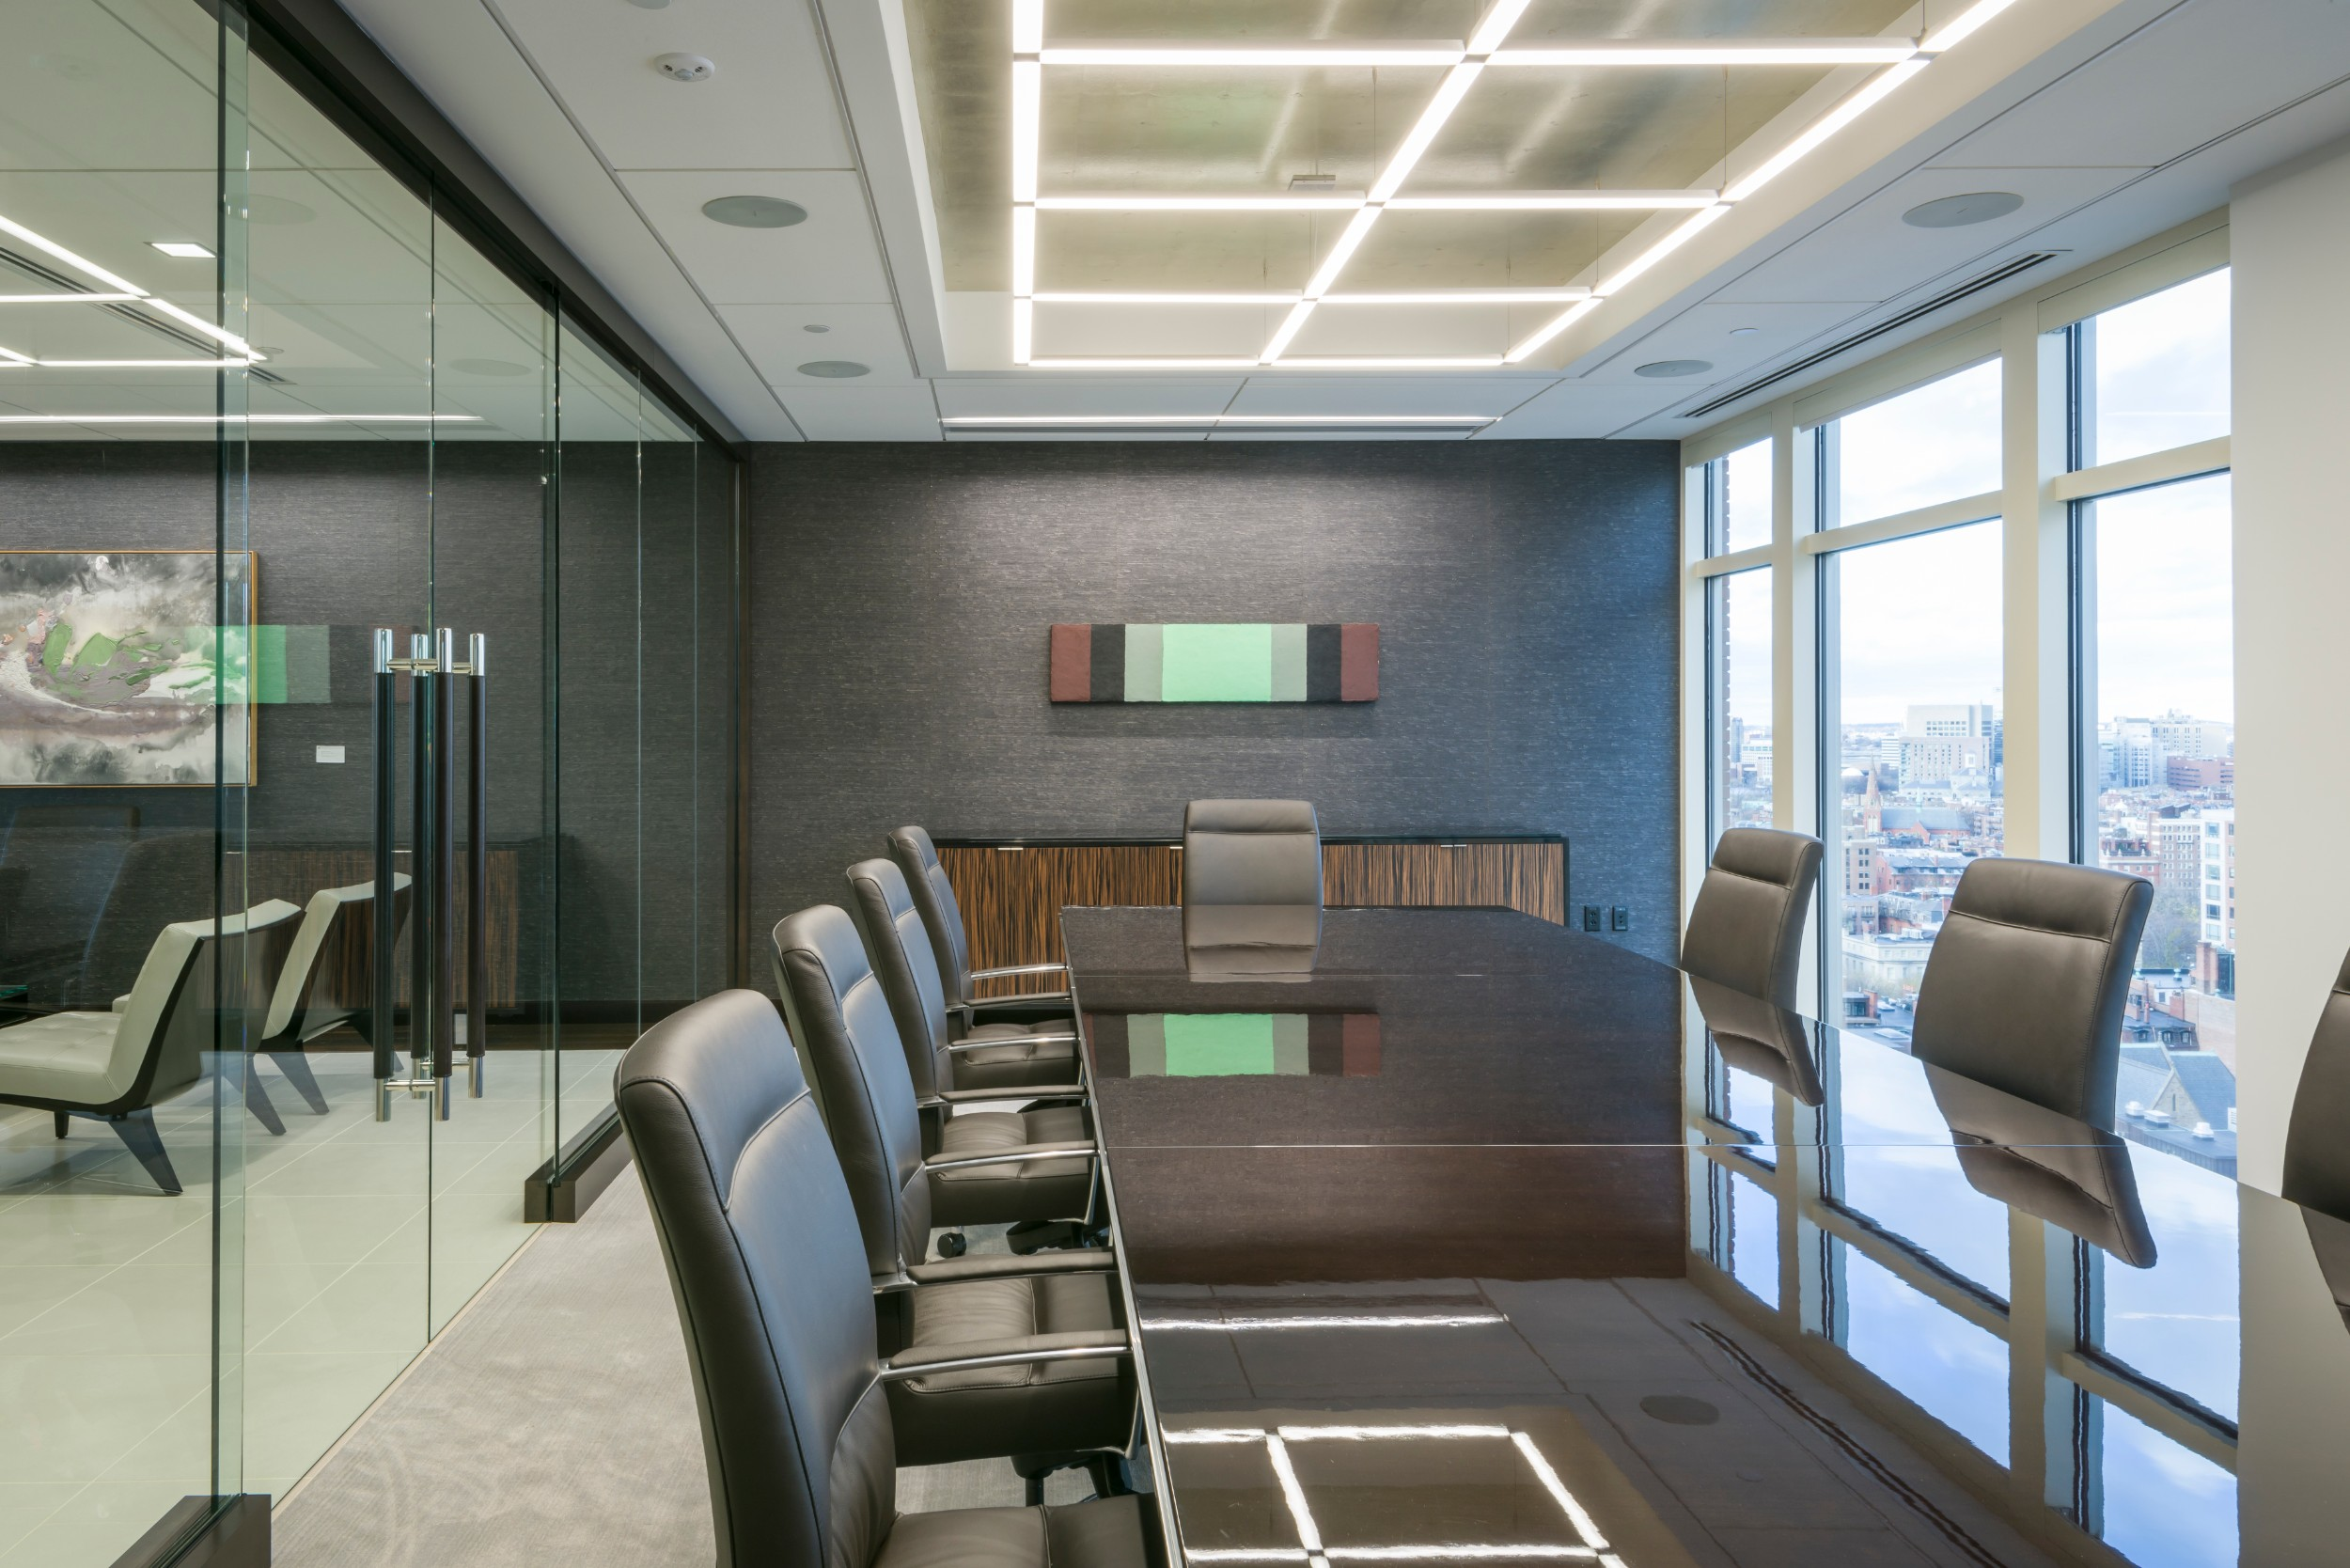 Corderman_Construction_Martignetti_Companies_Interior_Office_Buildout_Boardroom.jpg